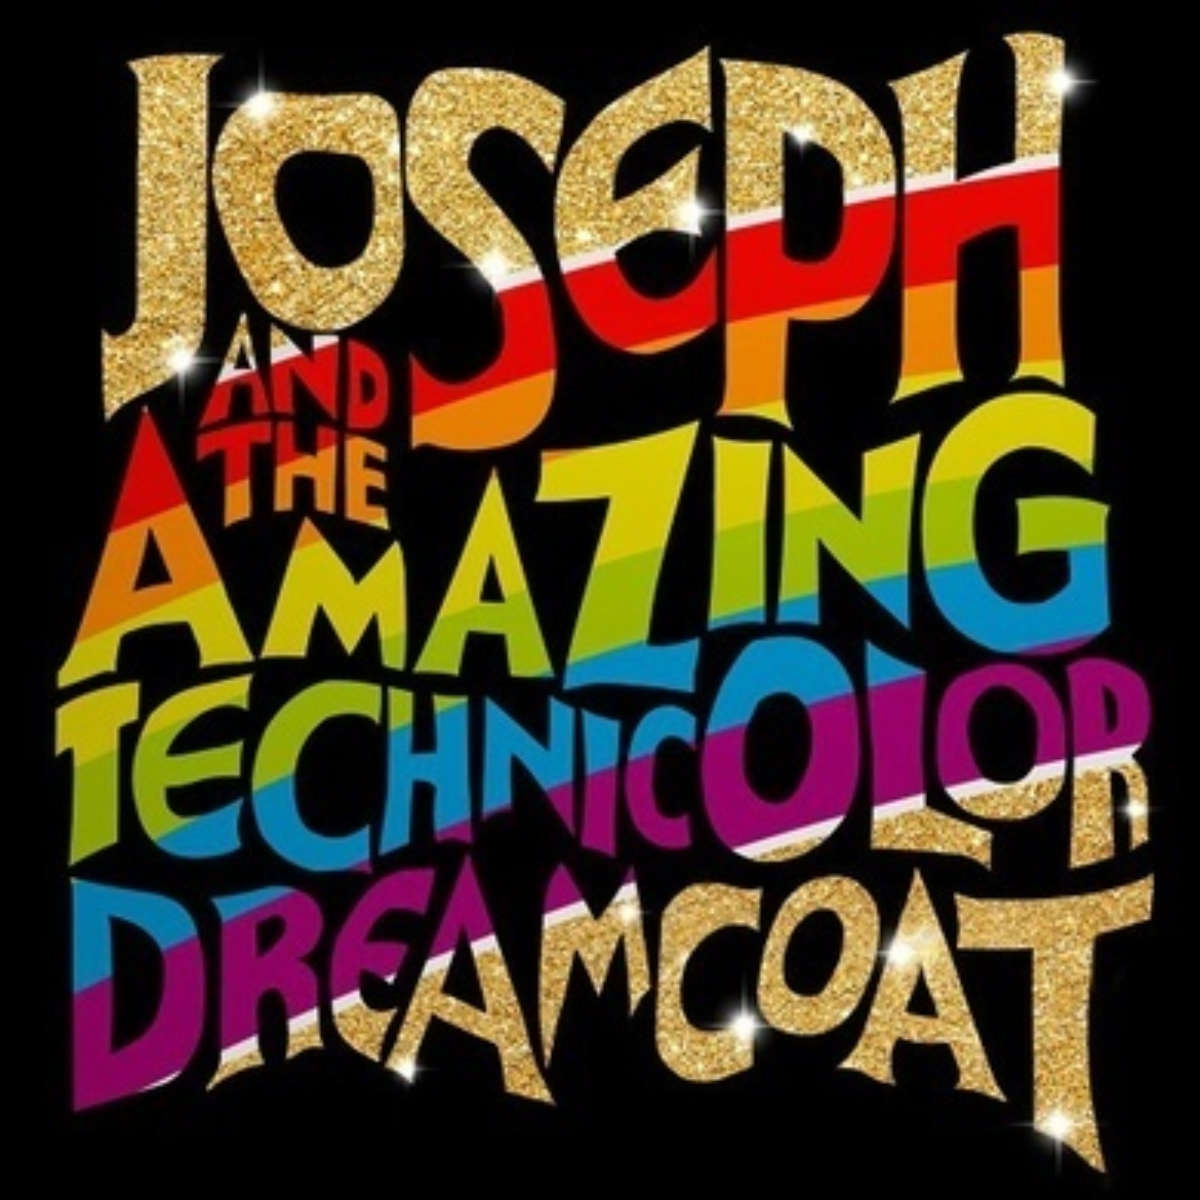 Joseph and the Amazing Technicolor Dreamcoat Images